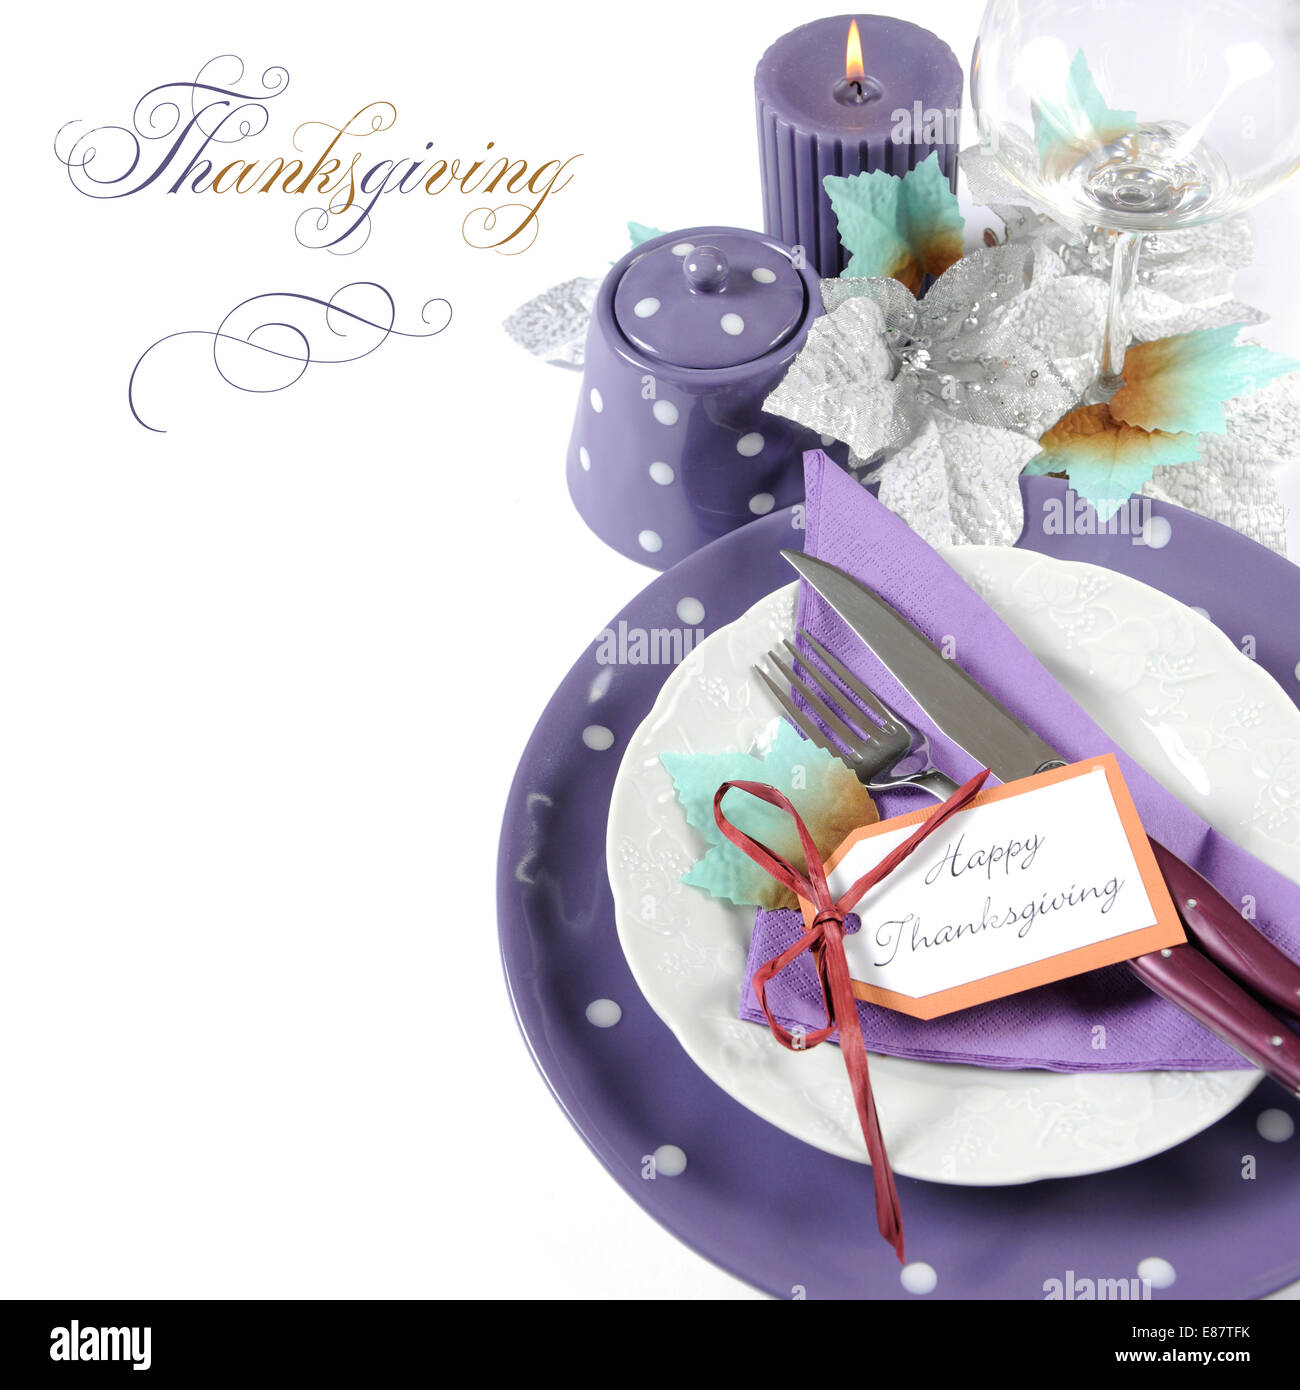 Happy Thanksgiving Fine Dining Table Place Setting In Purple, White And  Aqua Theme Colors, With Copy Space And Sample Text.